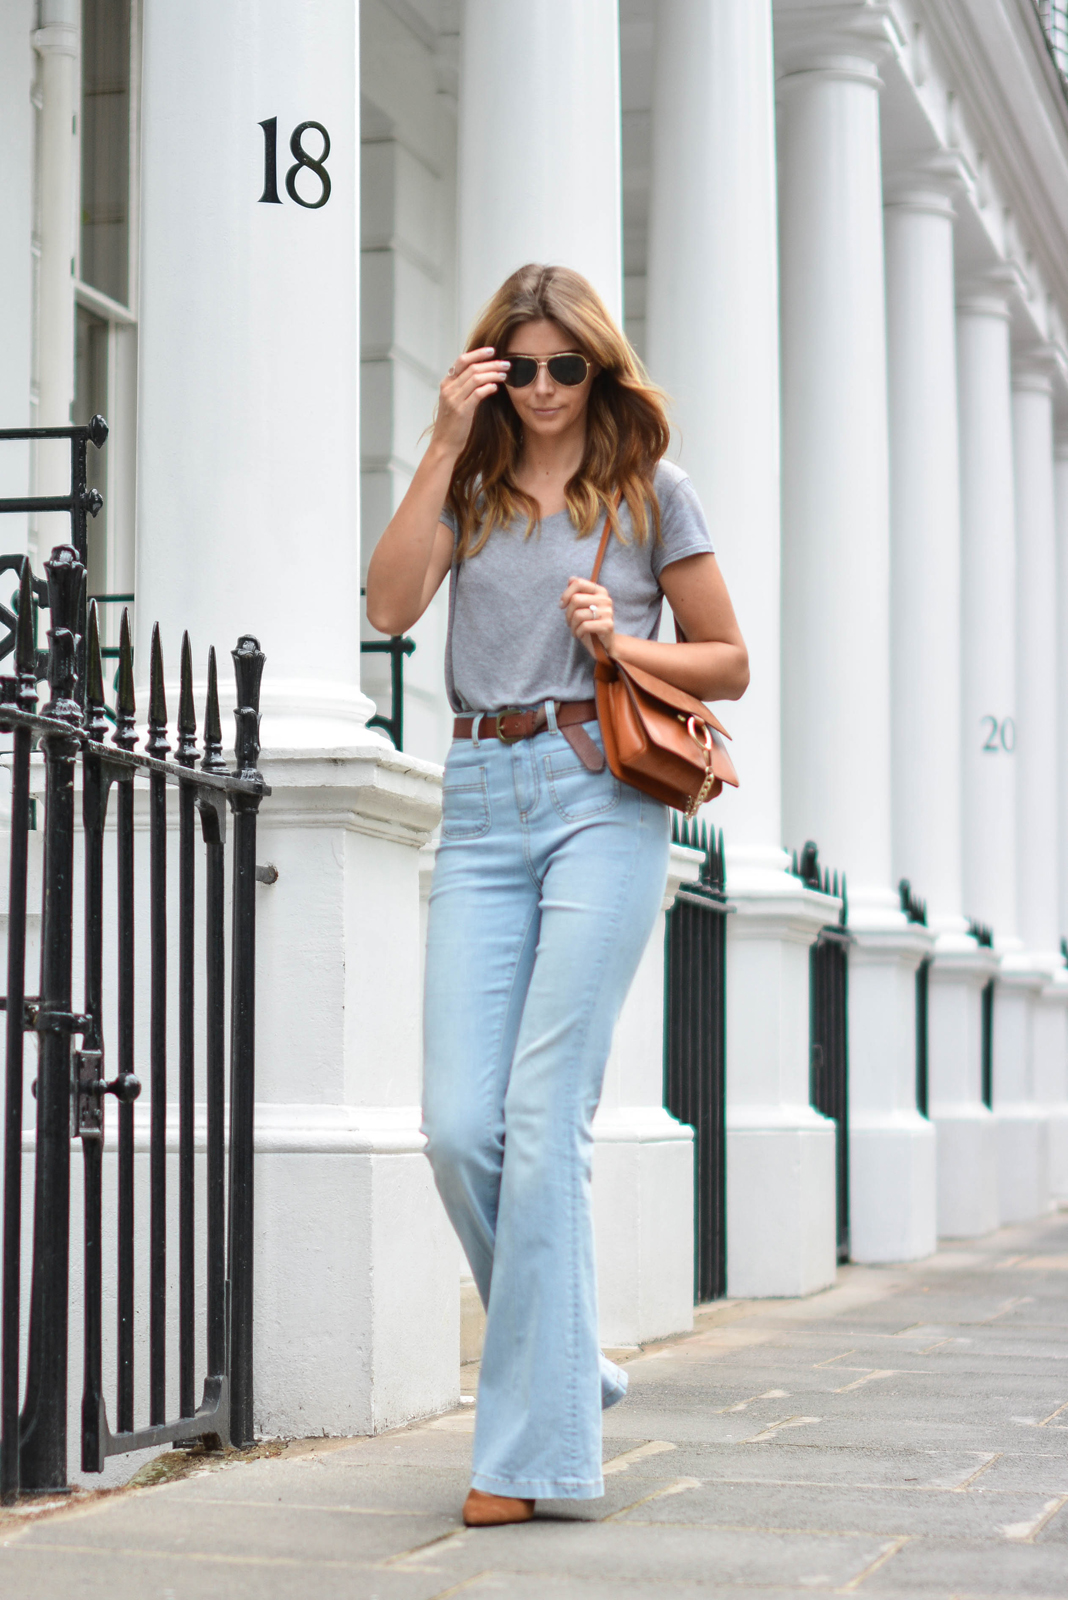 EJSTYLE wears Grey basic v neck t shirt, aviator sungasses,Tan suede leather chloe style Faye bag by Jessica Buurman, High waisted flare jeans, tan knot belt, tan suede heels OOTD